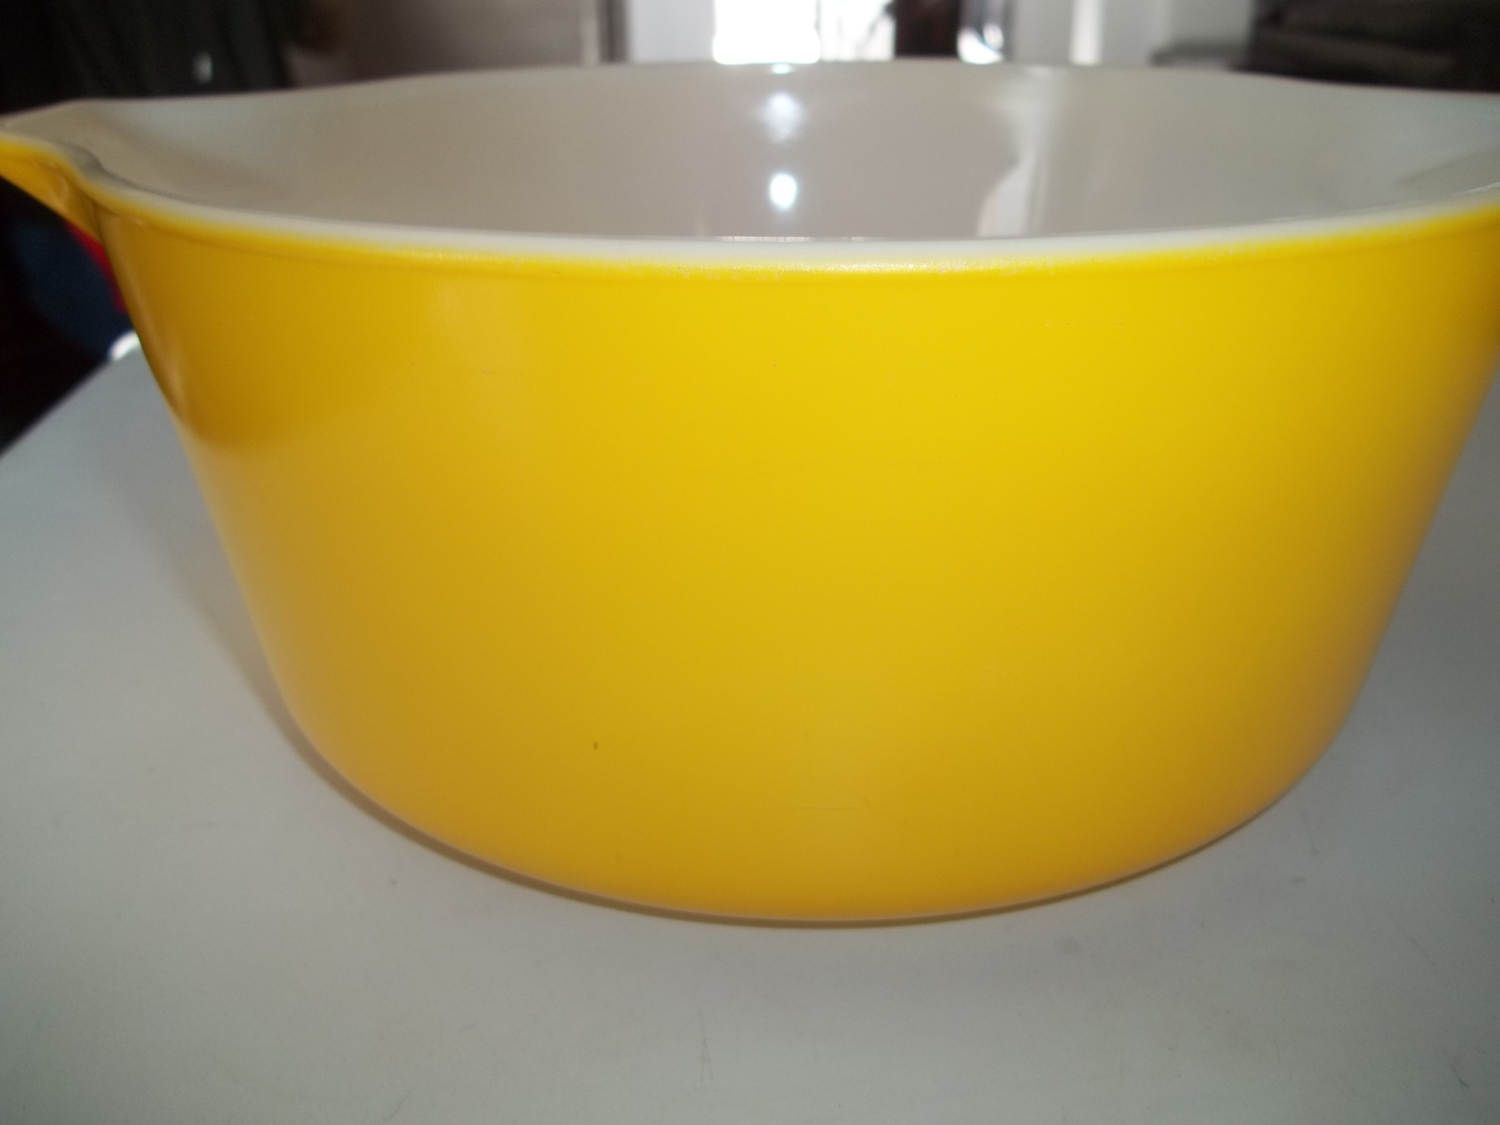 Yellow, Pyrex #475-B, 2.5 Quart, Vintage, Casserole Dish, Baking Dish, Bowl by PyrexKitchen on Etsy